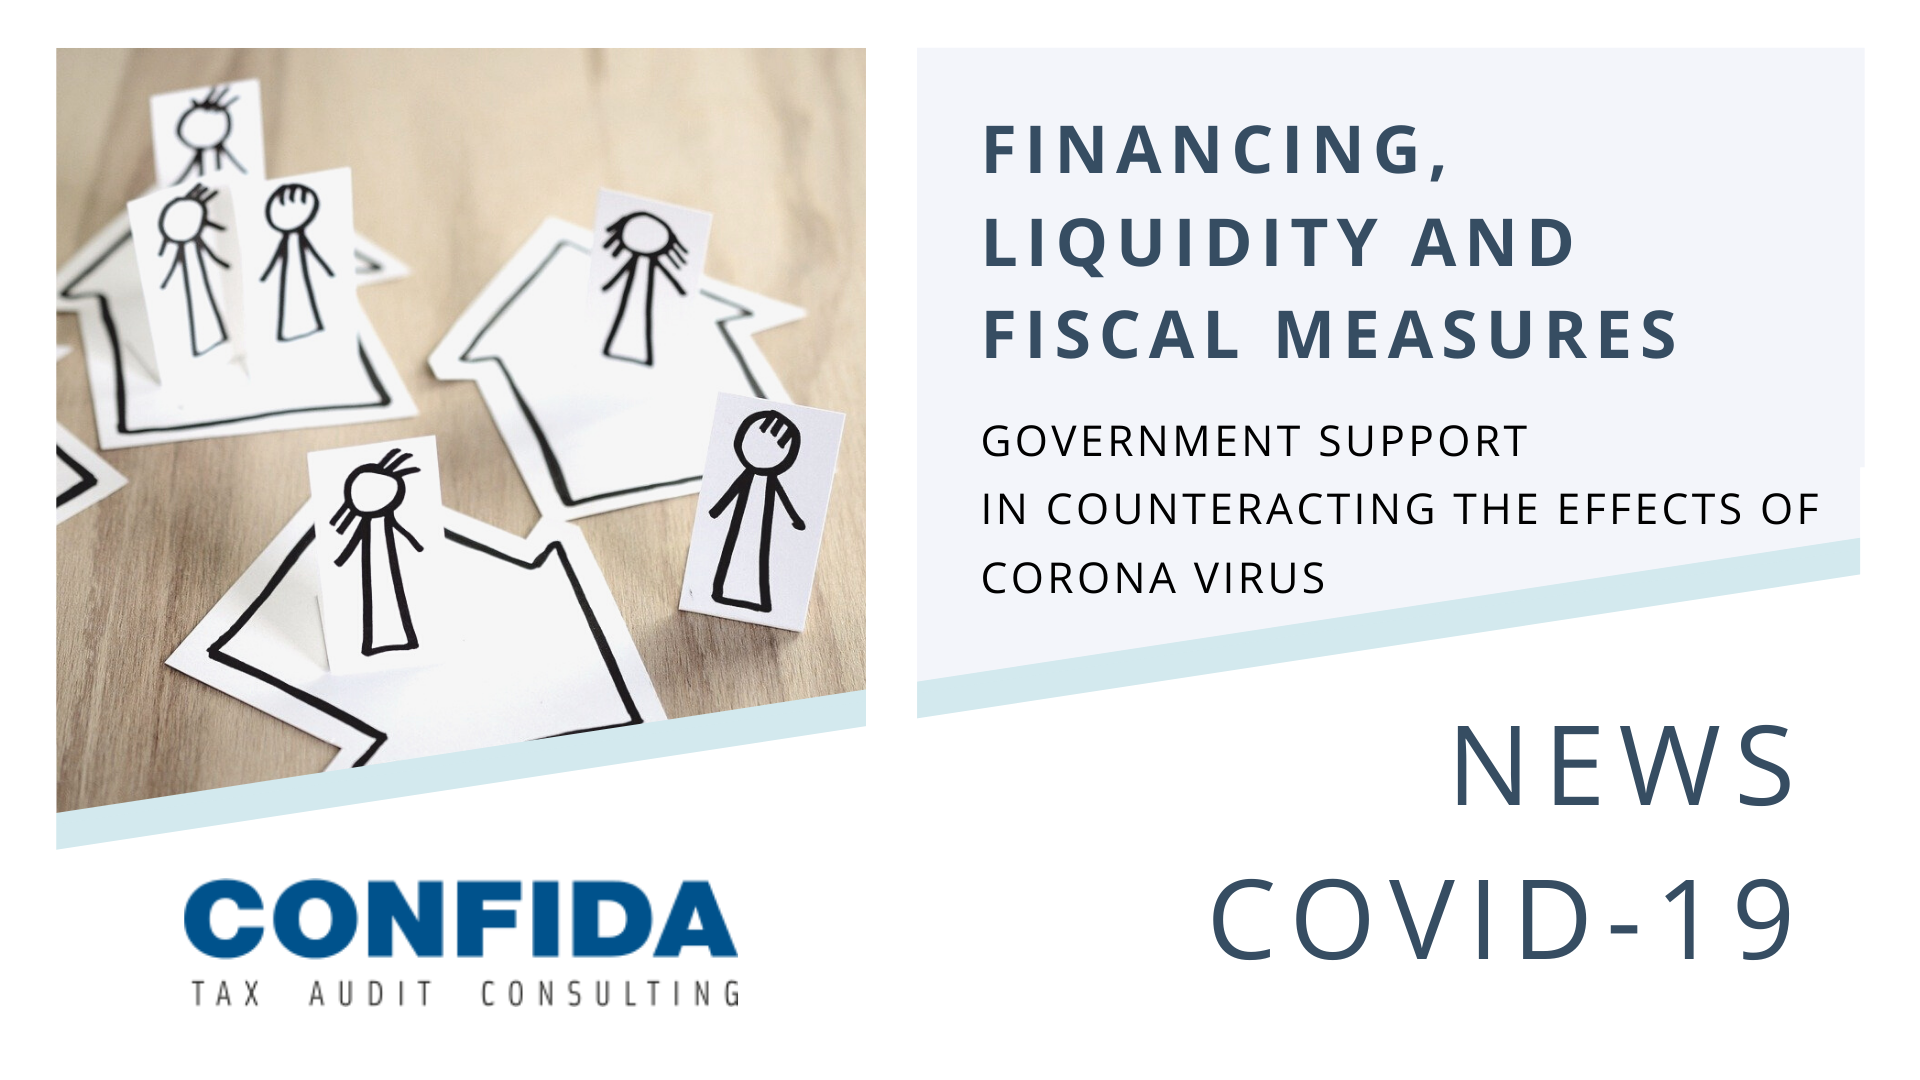 Financing, Liquidity and Fiscal Measures